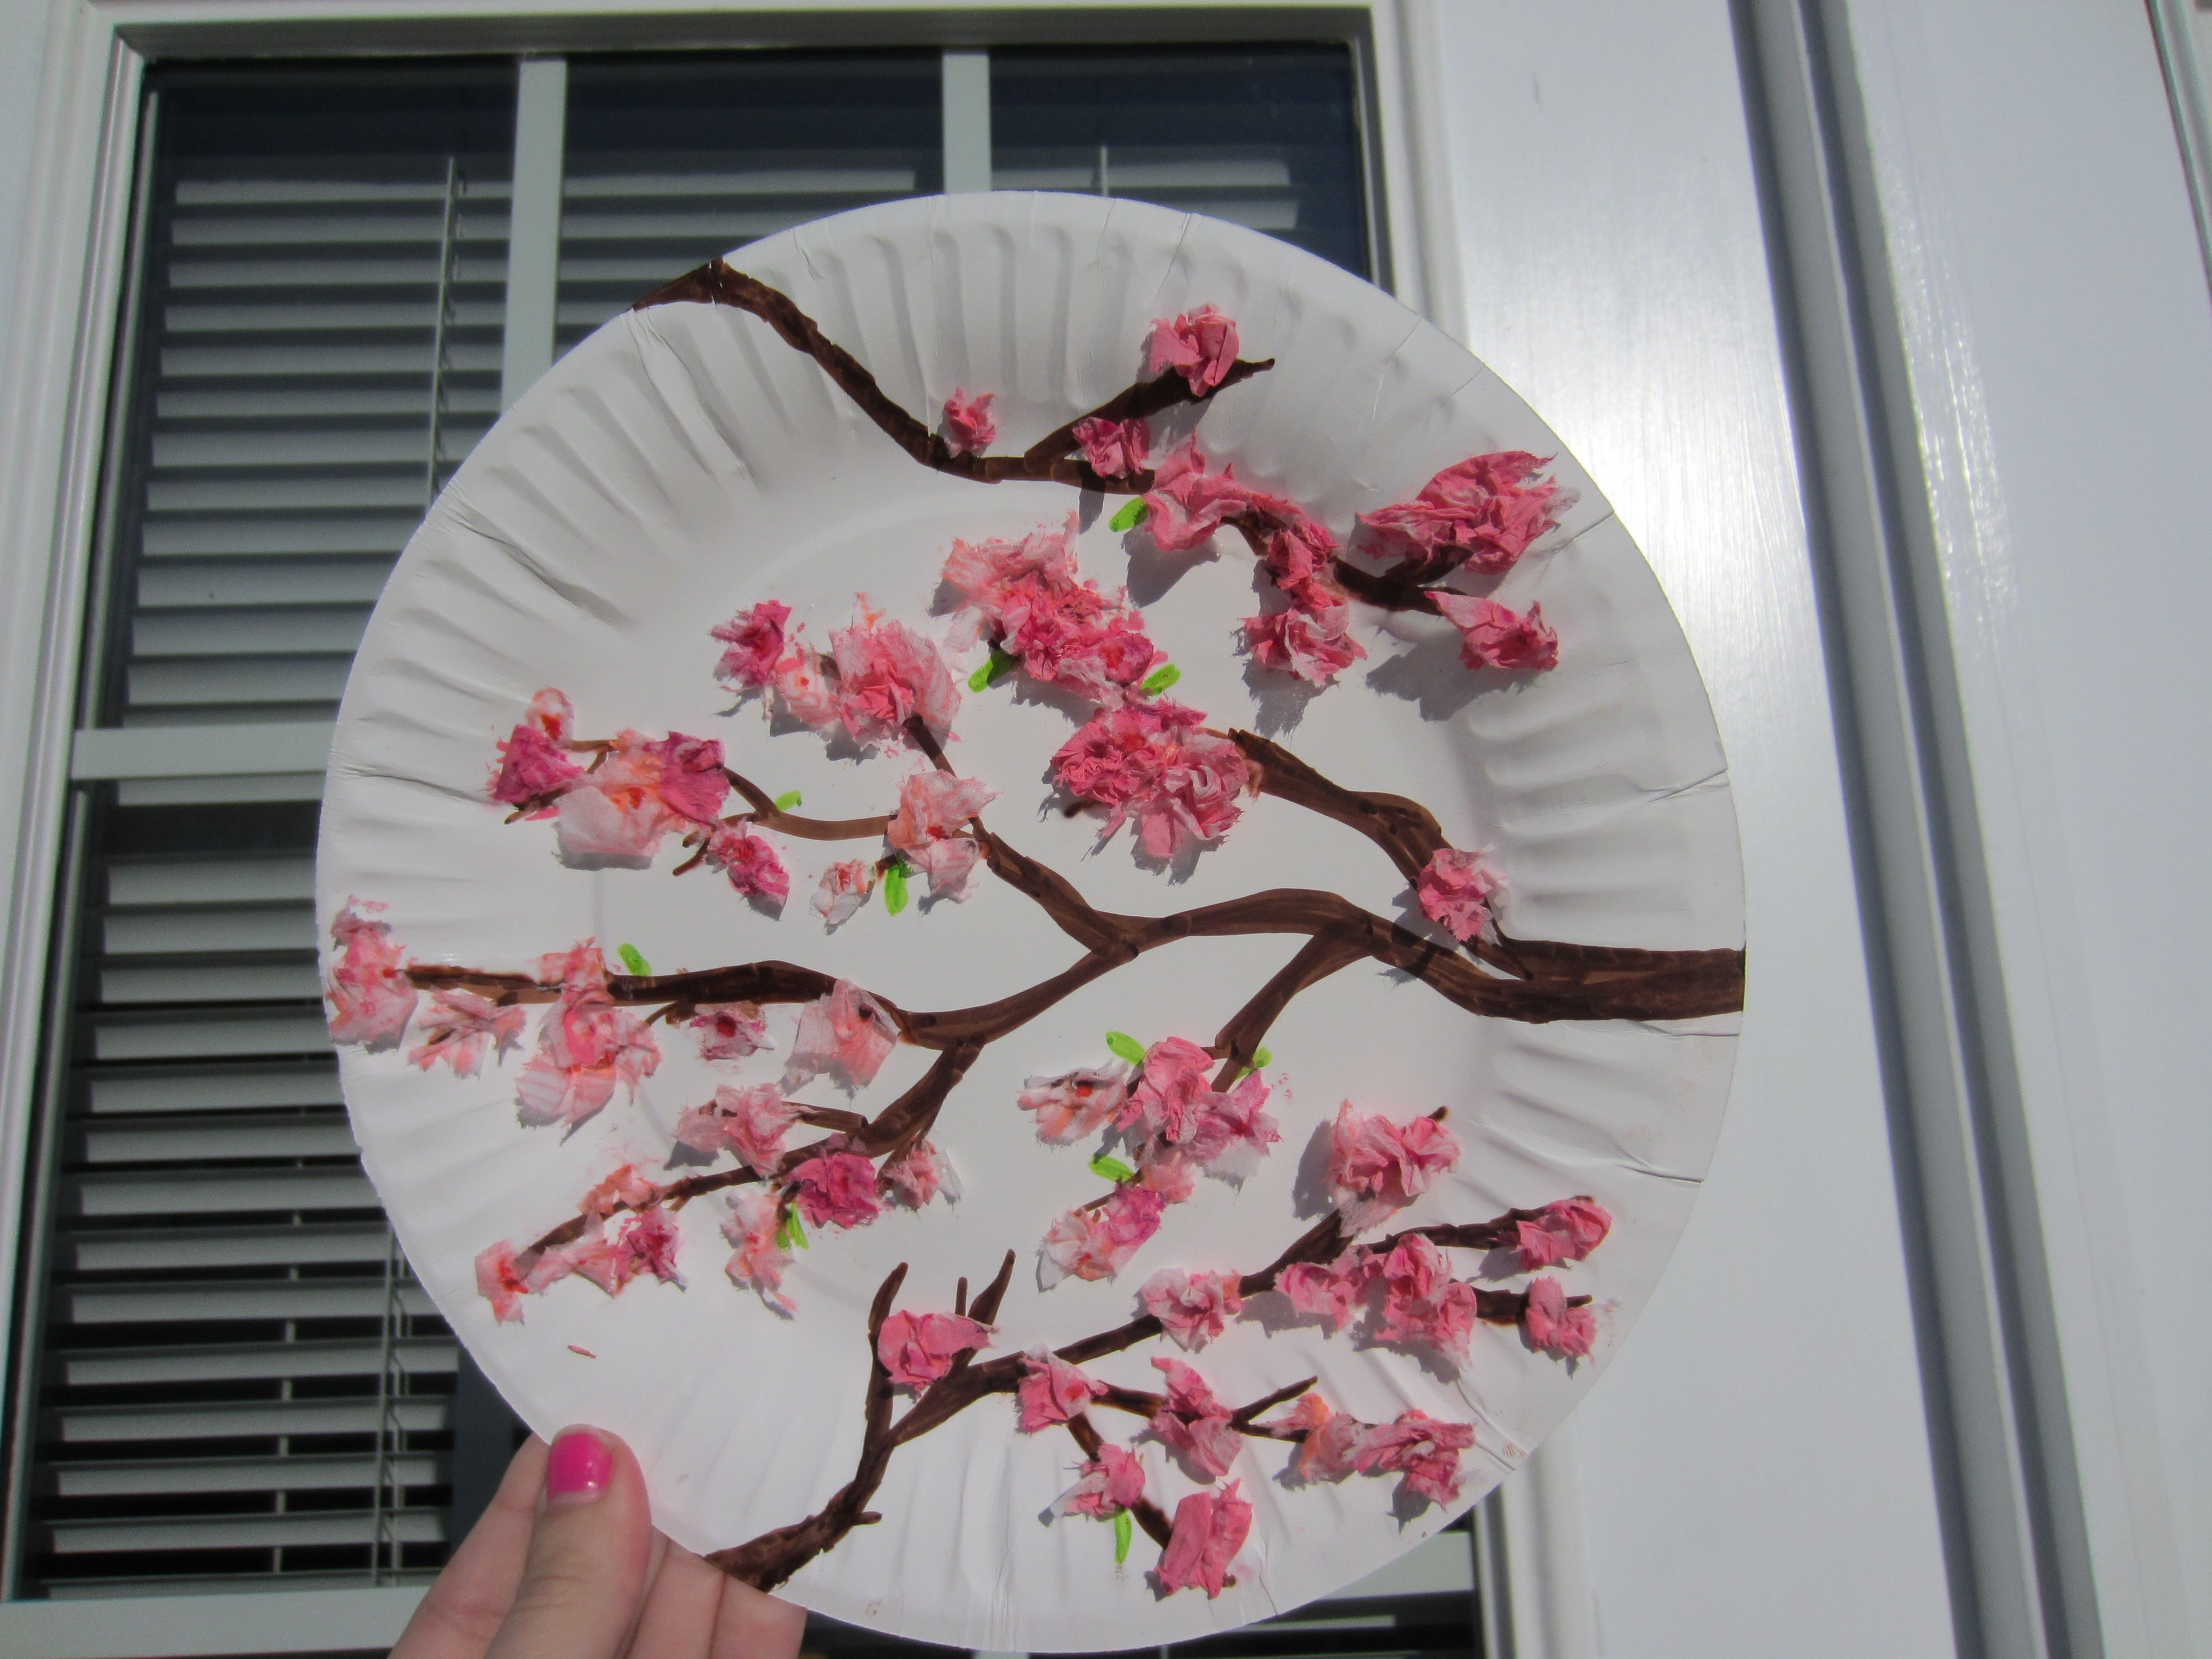 5 No Directive Cherry Blossom Art Cherry Blossom Art Chinese New Year Crafts For Kids Spring Crafts For Kids